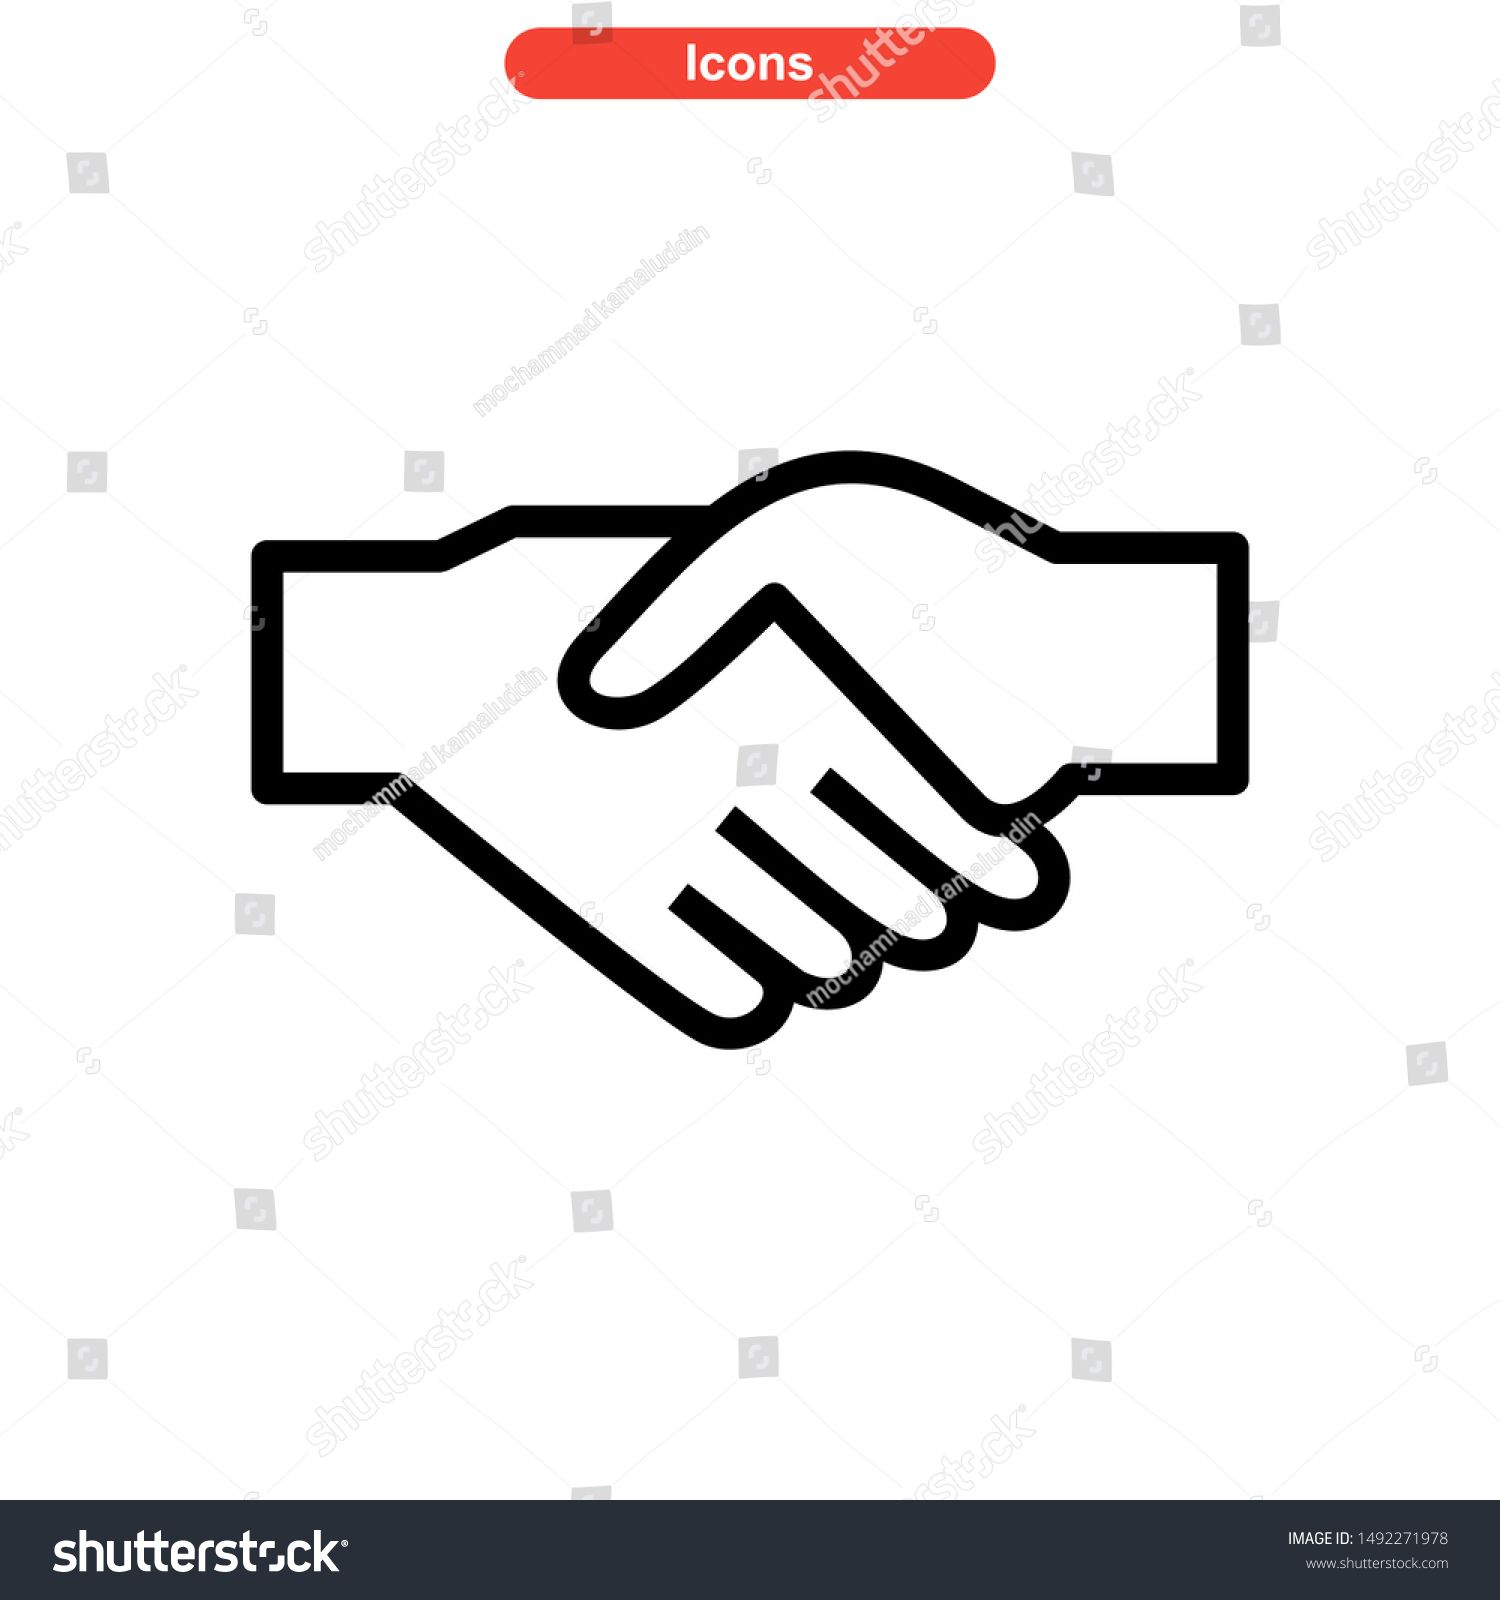 Handshake Icon Isolated Sign Symbol Vector Illustration High Quality Black Style Vector Icons N Sponsored Sponsored Si In 2020 Paint Designs Sales Image Vector